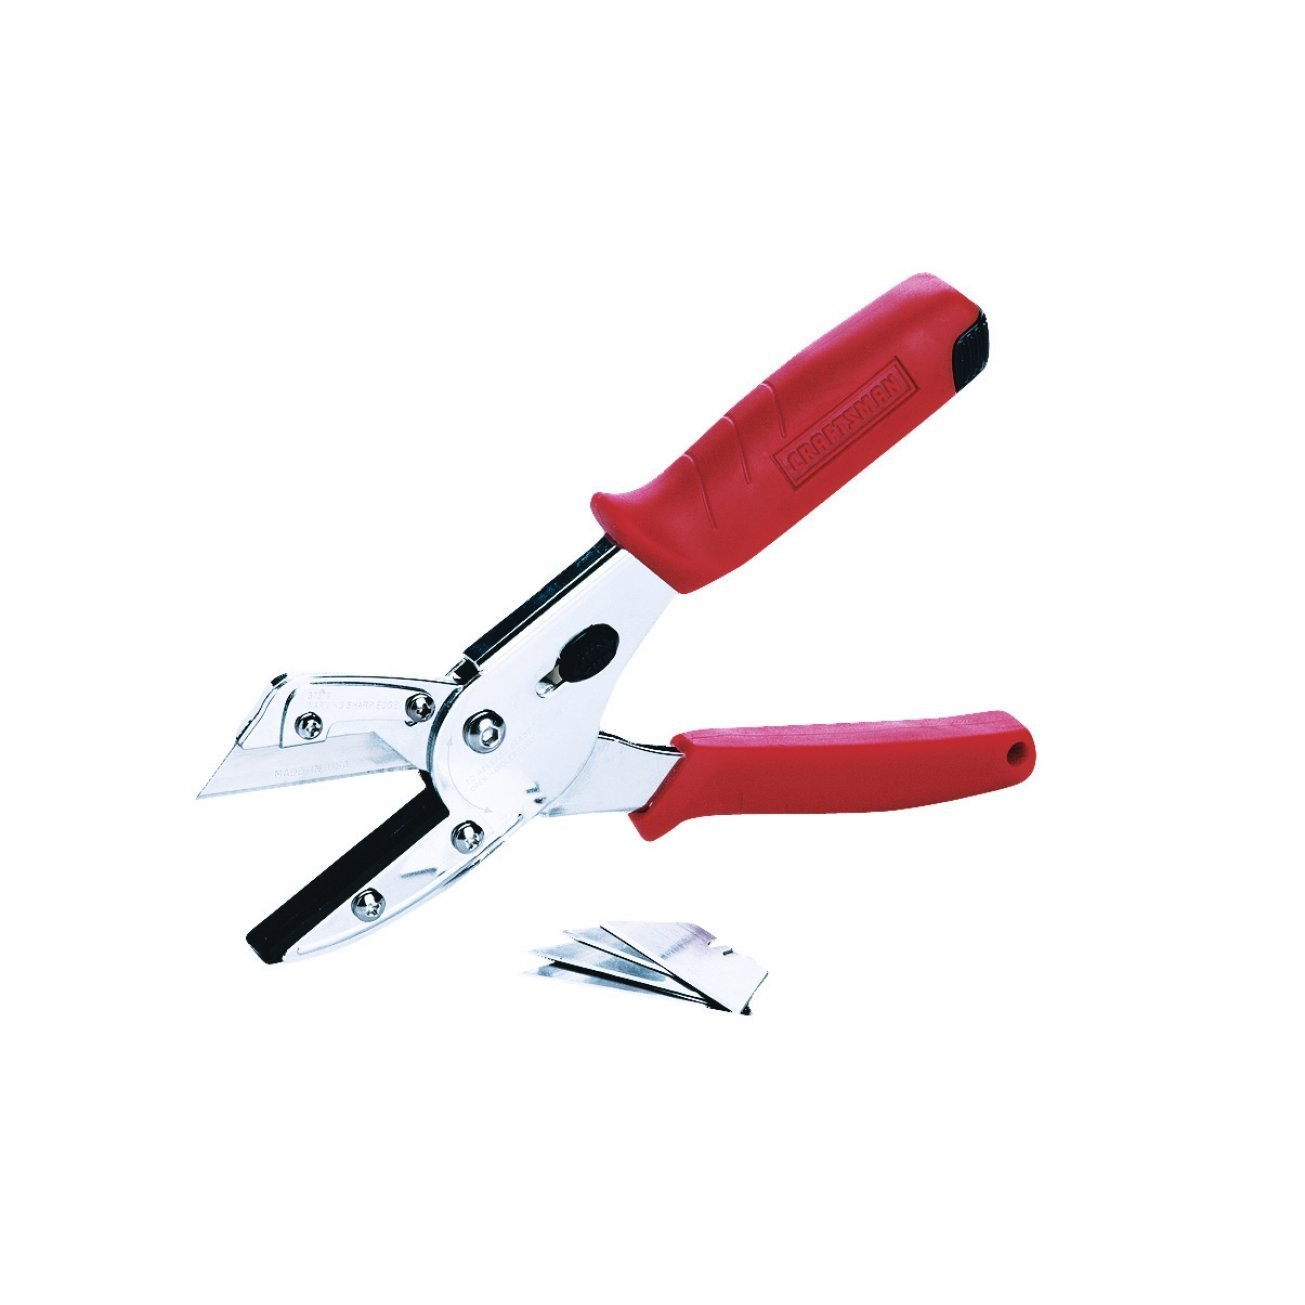 Craftsman Edge Utility Cutter, 9-37309 by Craftsman